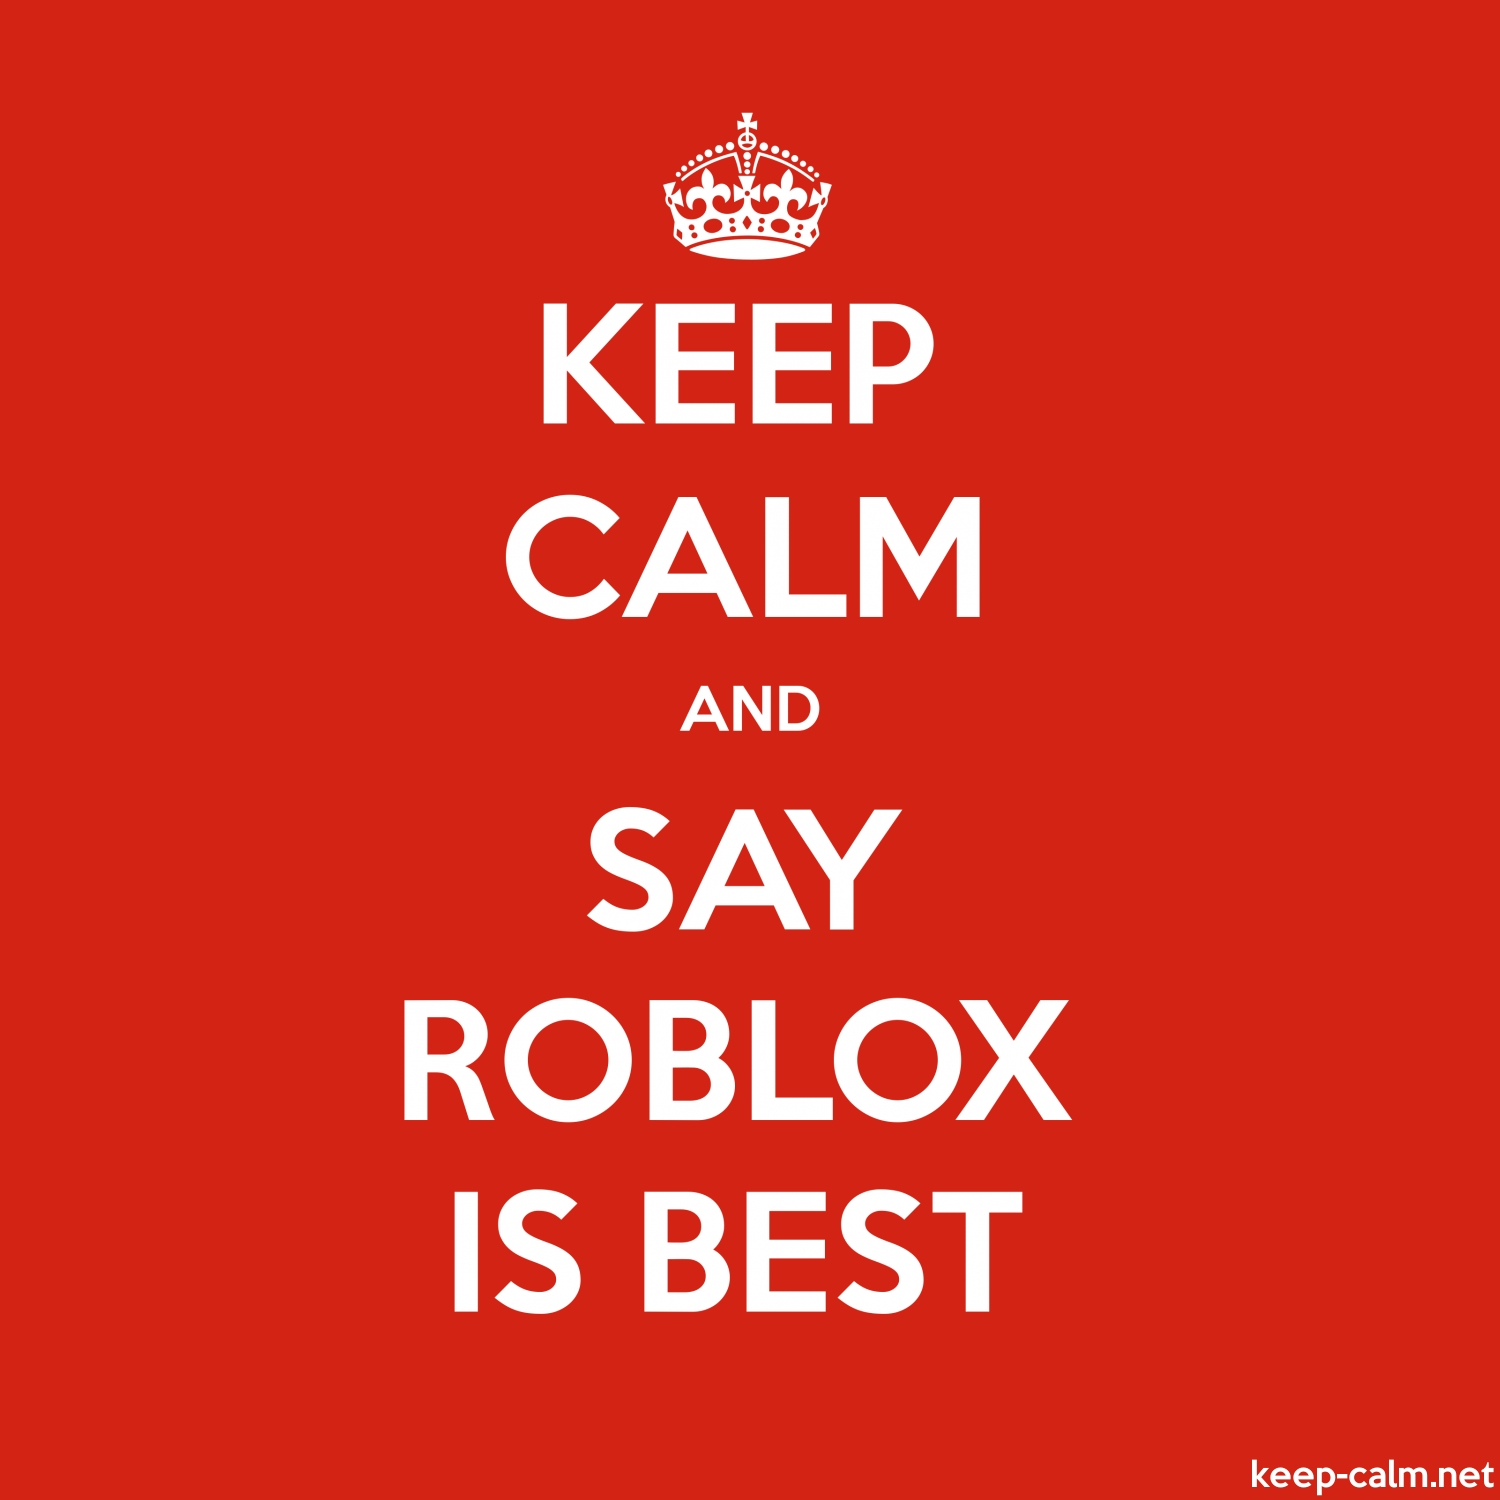 Say Daddy Roblox Keep Calm And Say Roblox Is Best Keep Calm Net